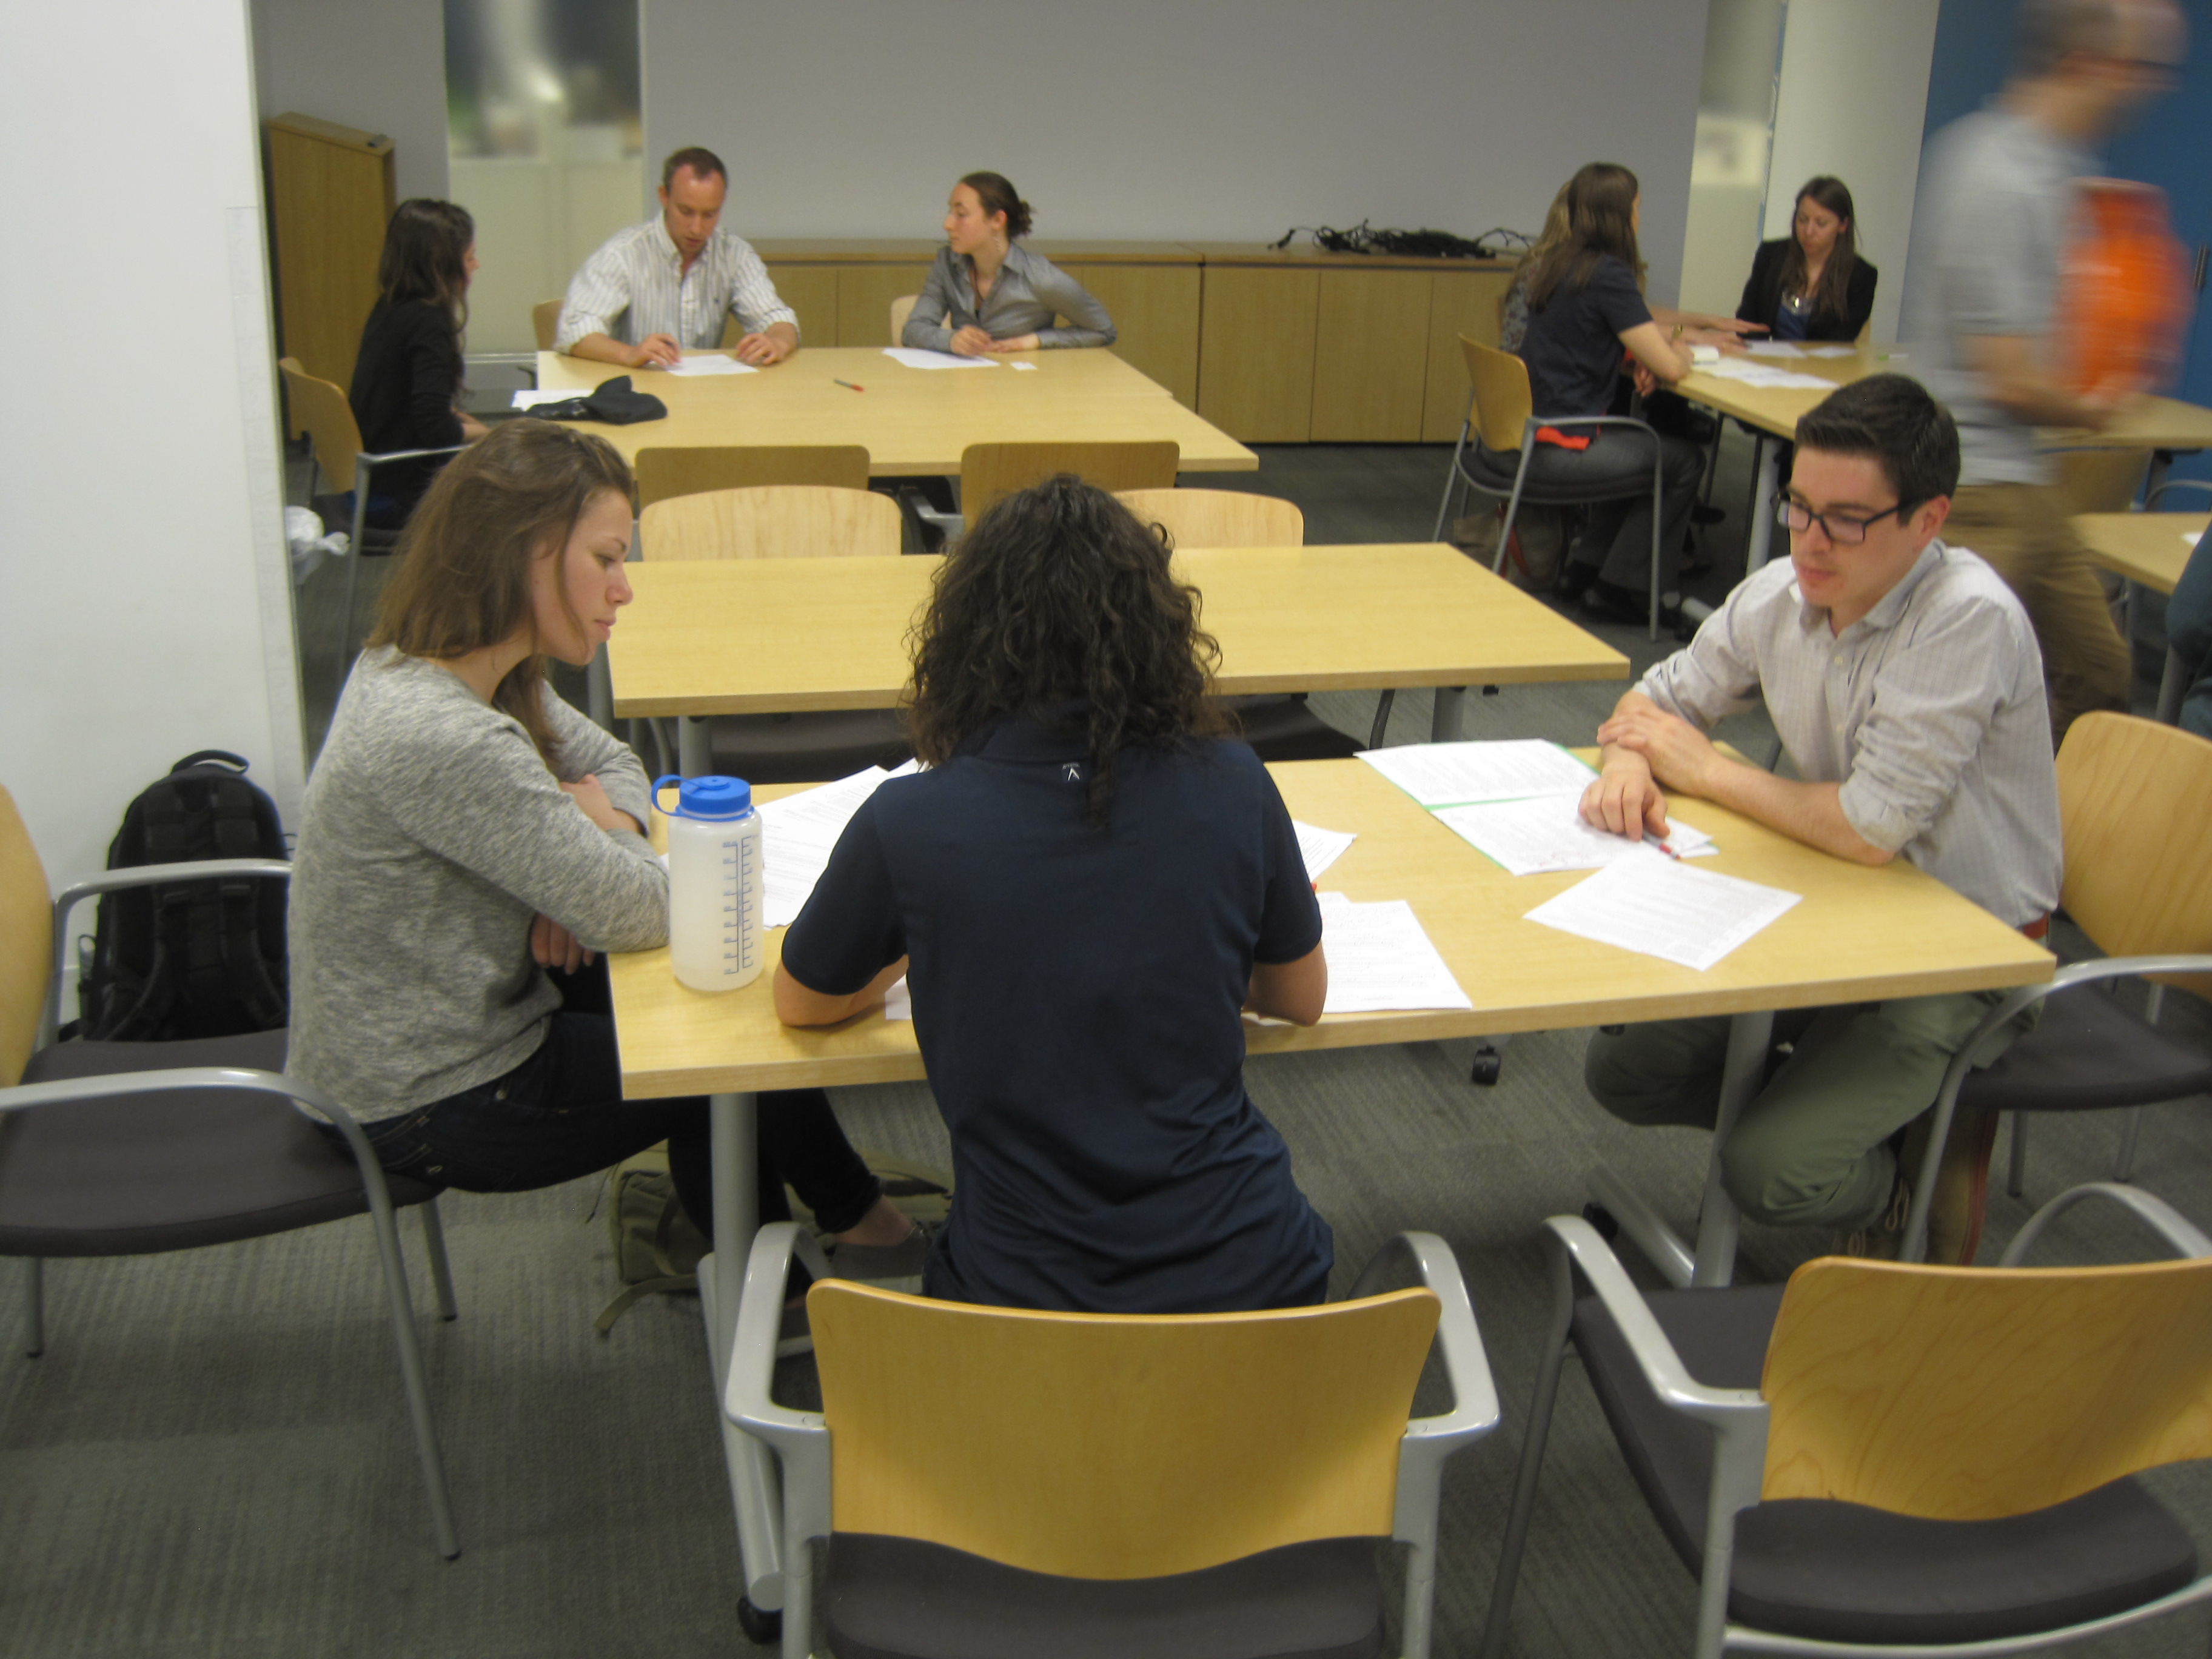 job speed dating gelsenkirchen Have you ever heard of speed dating it's an opportunity for people to quickly meet a large number of people to date potentially attendees are paired with each person attending the session for two minutes.